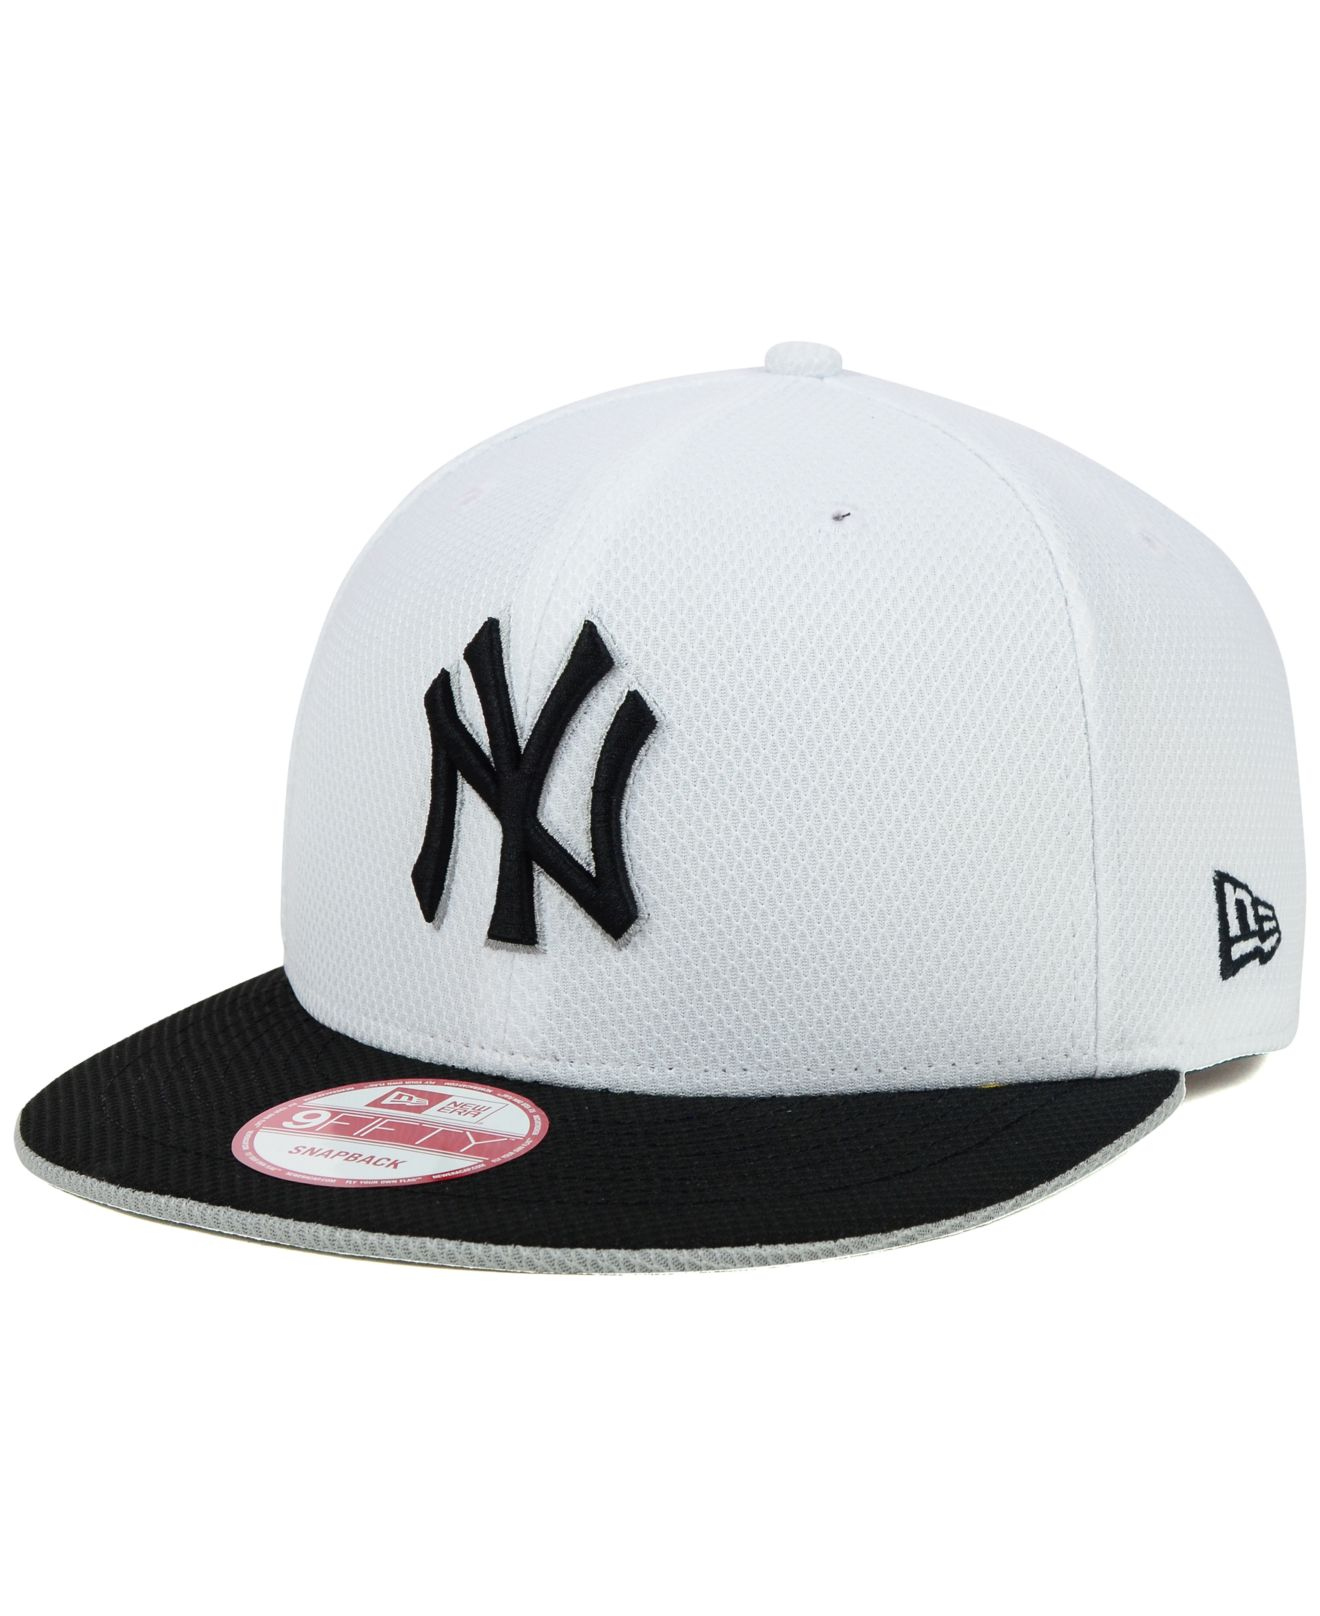 c6d5a309 ... best lyst ktz new york yankees white diamond era 9fifty snapback cap in  9cbbc d5e13